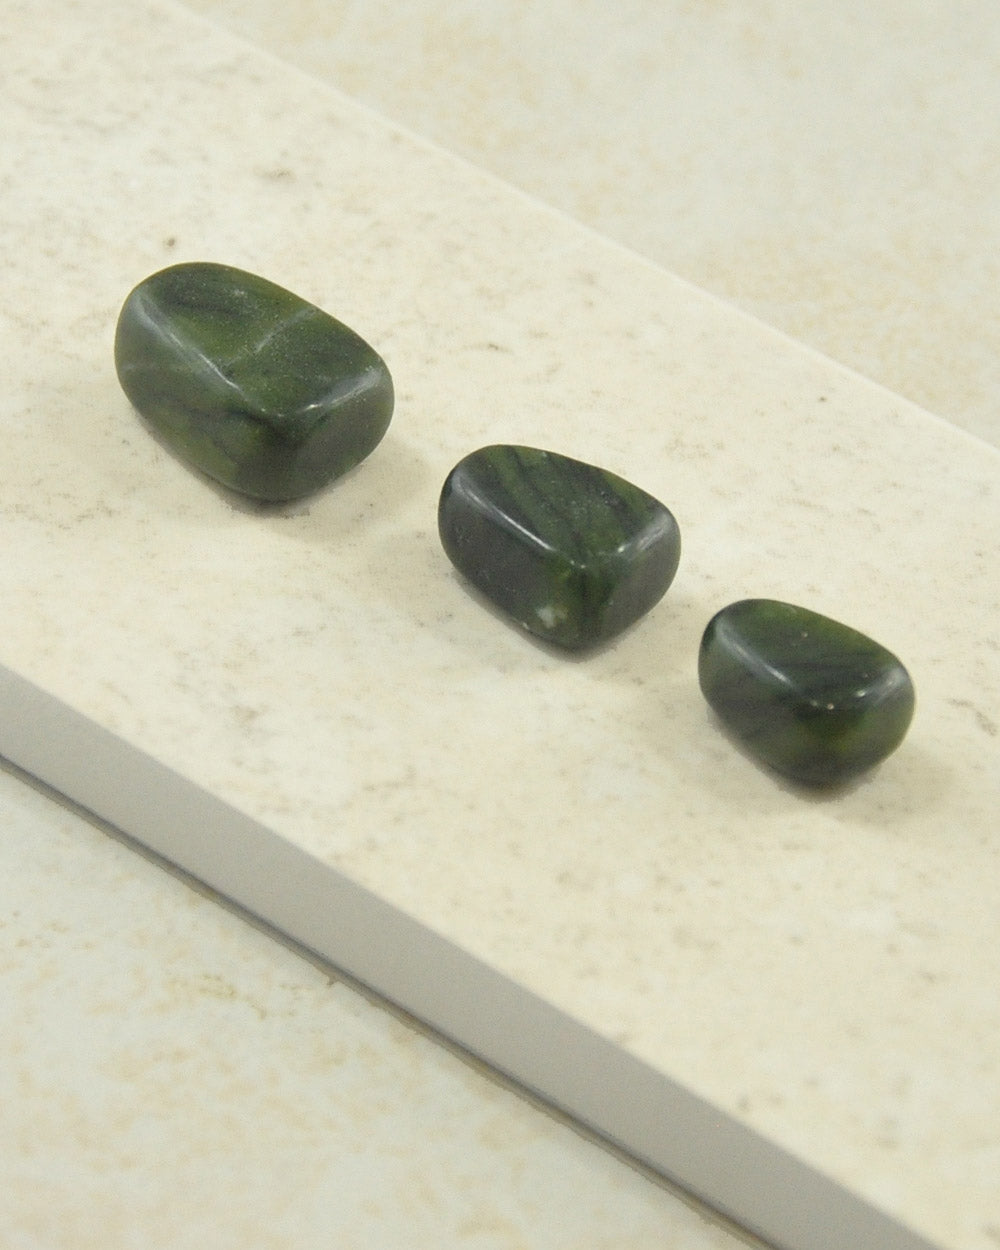 Green Moss Agate Tumble Stones - Set of 3